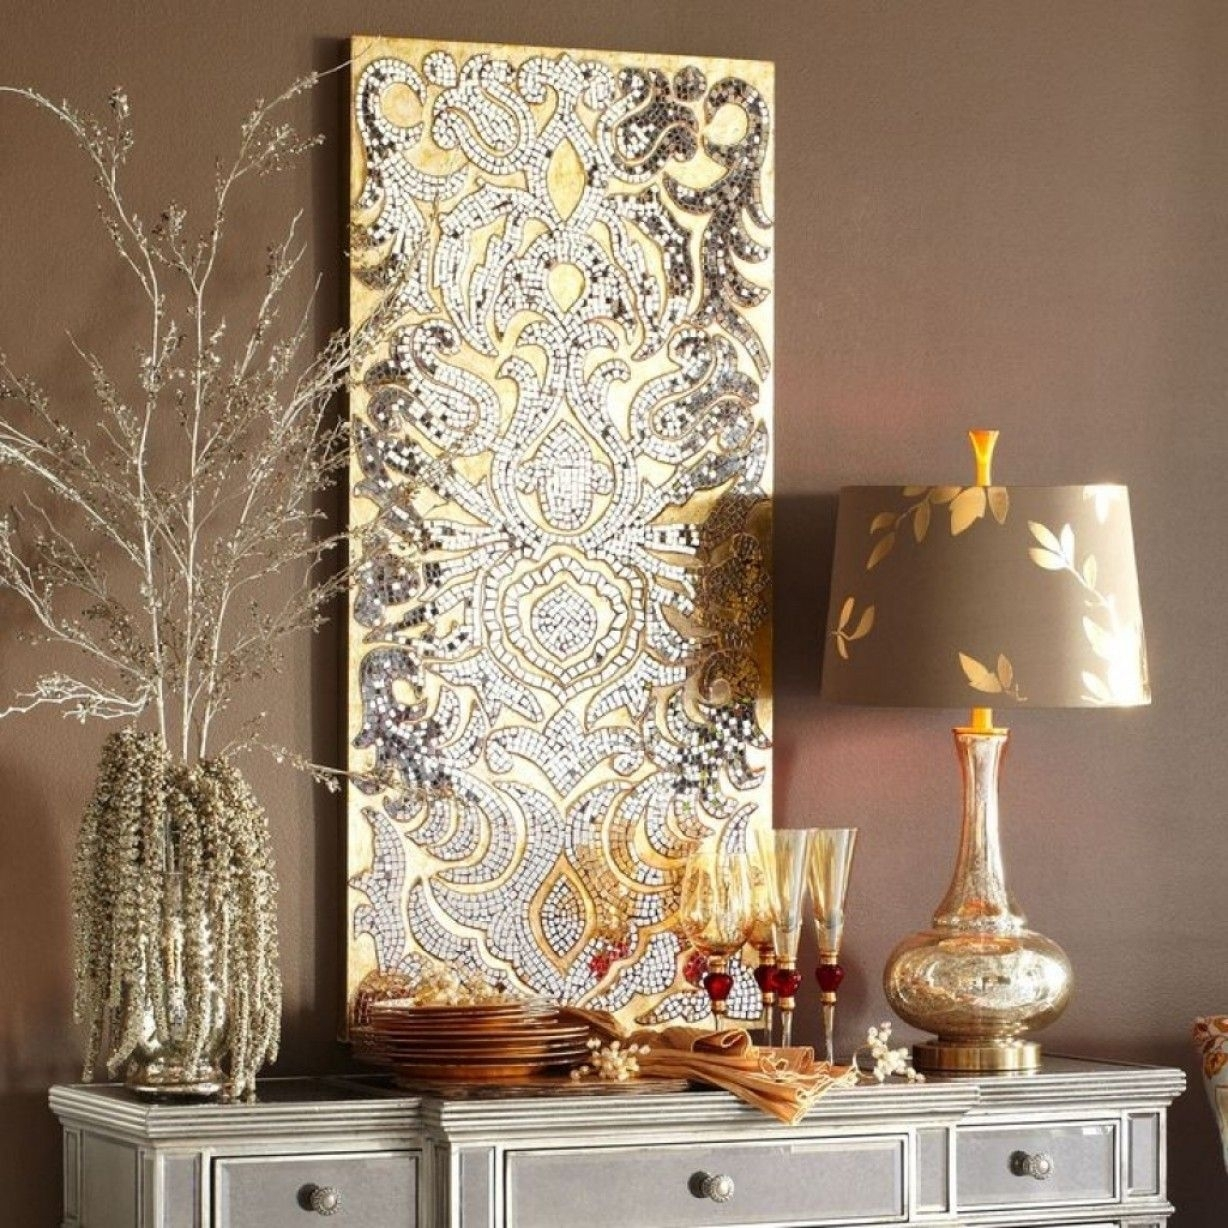 Stunning Pretty Mirror Mosaic Wall Art With Diy Decor Large Tile Intended For Mirror Mosaic Wall Art (View 9 of 20)